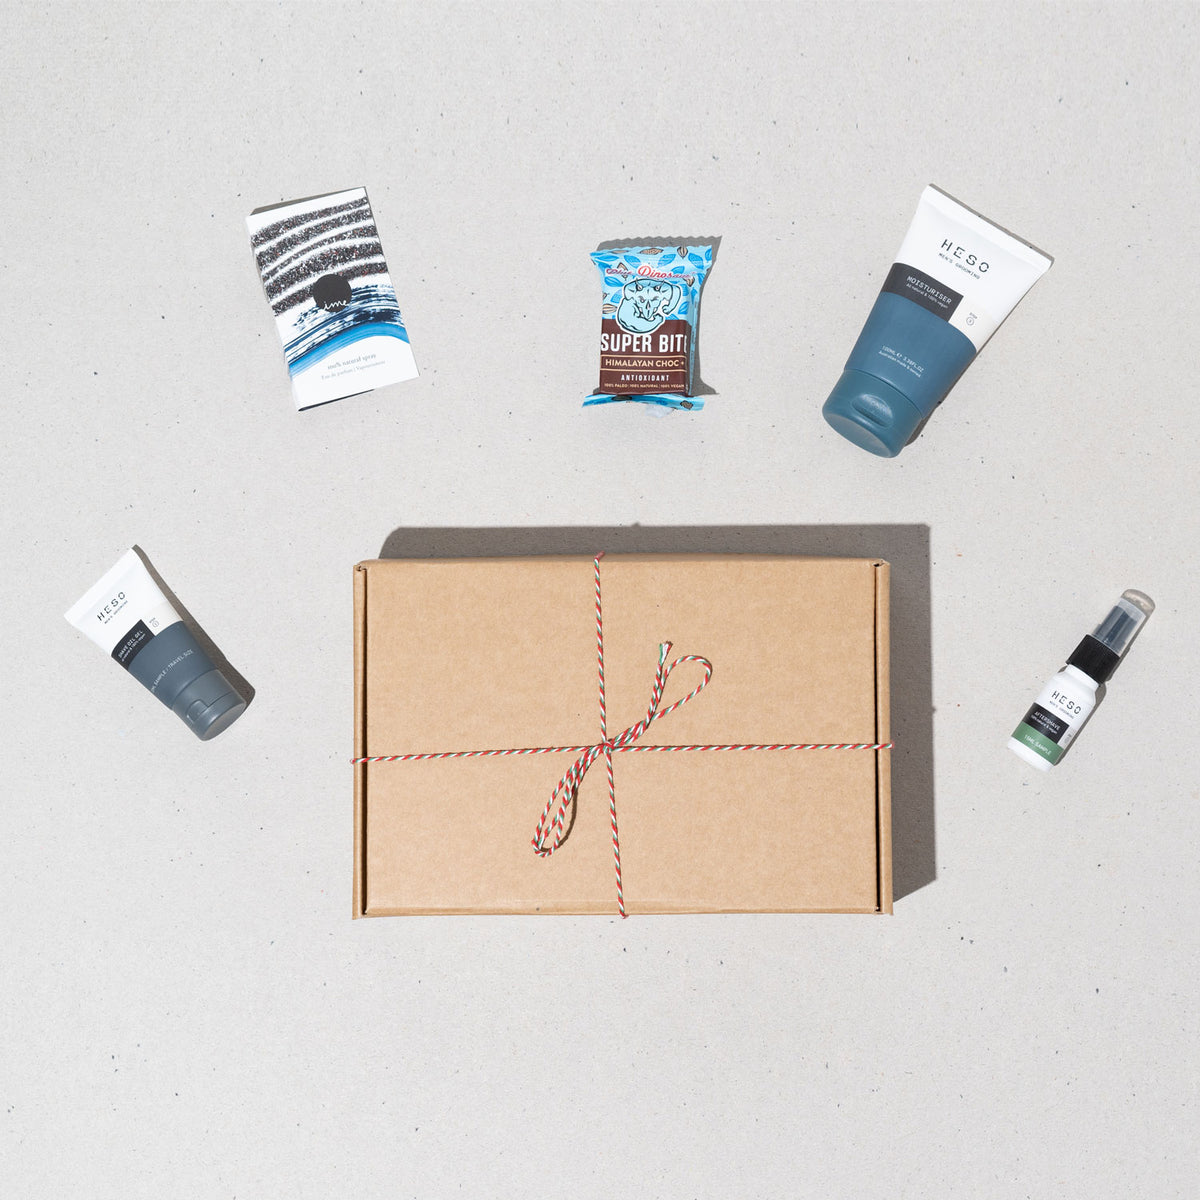 Everyday Superhero Gift Box